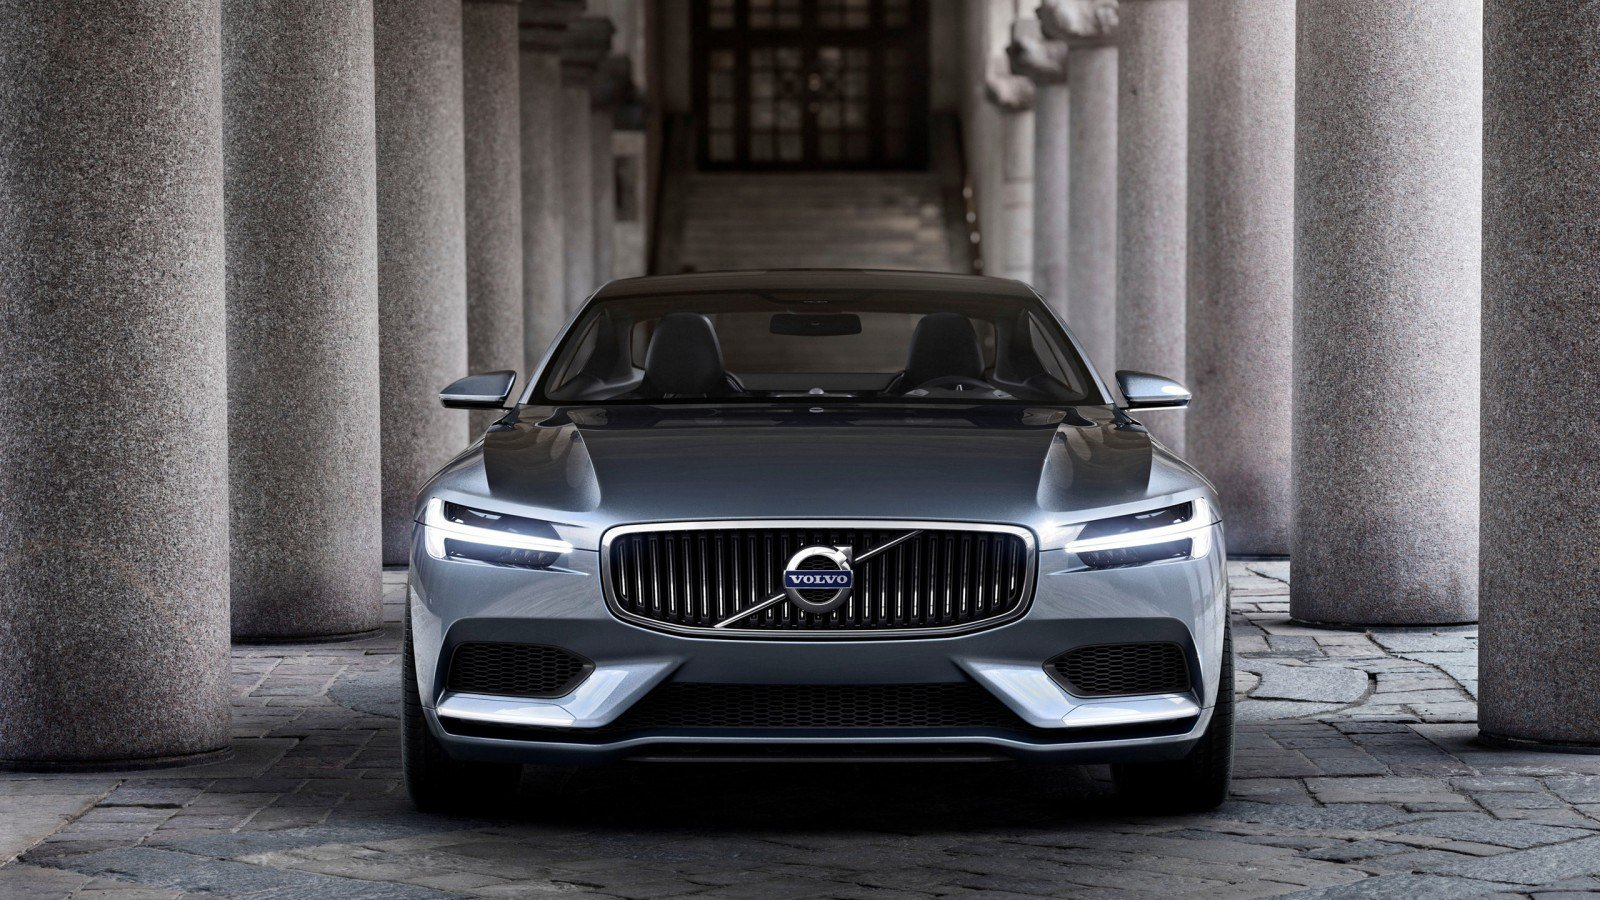 New 2015 Volvo Concept Coupe Wallpaper Hd Car Wallpapers On This Month